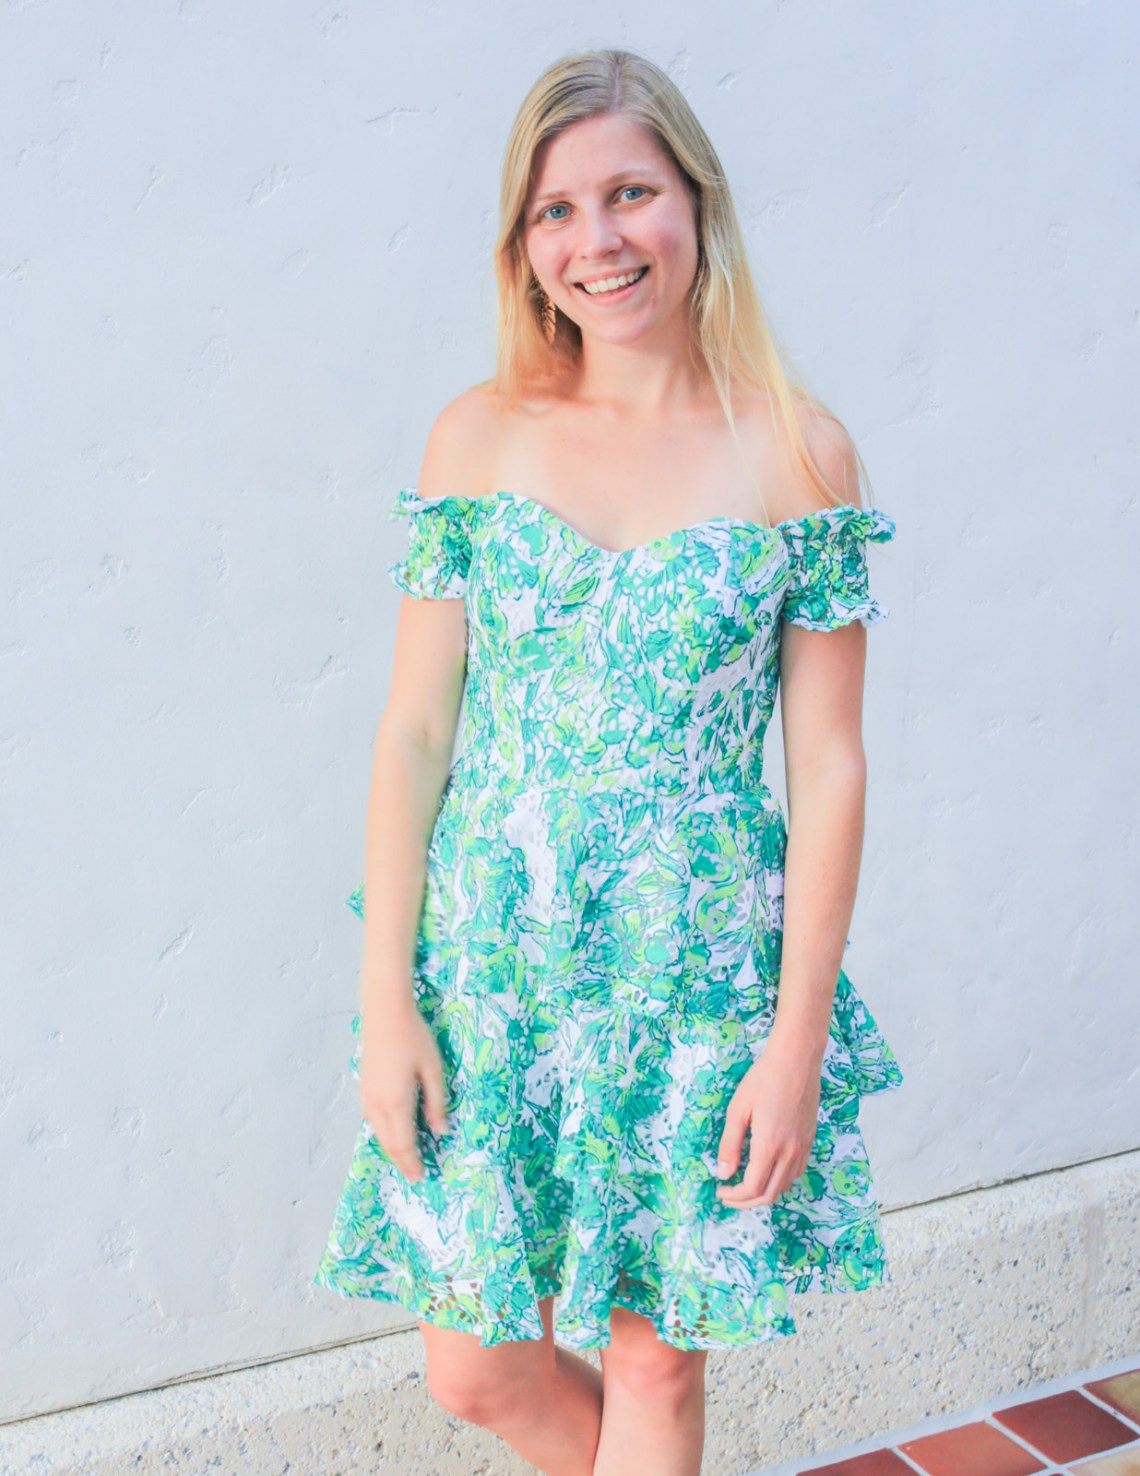 Lilly Pulitzer Cicely Dress from APS - Central Florida Chic